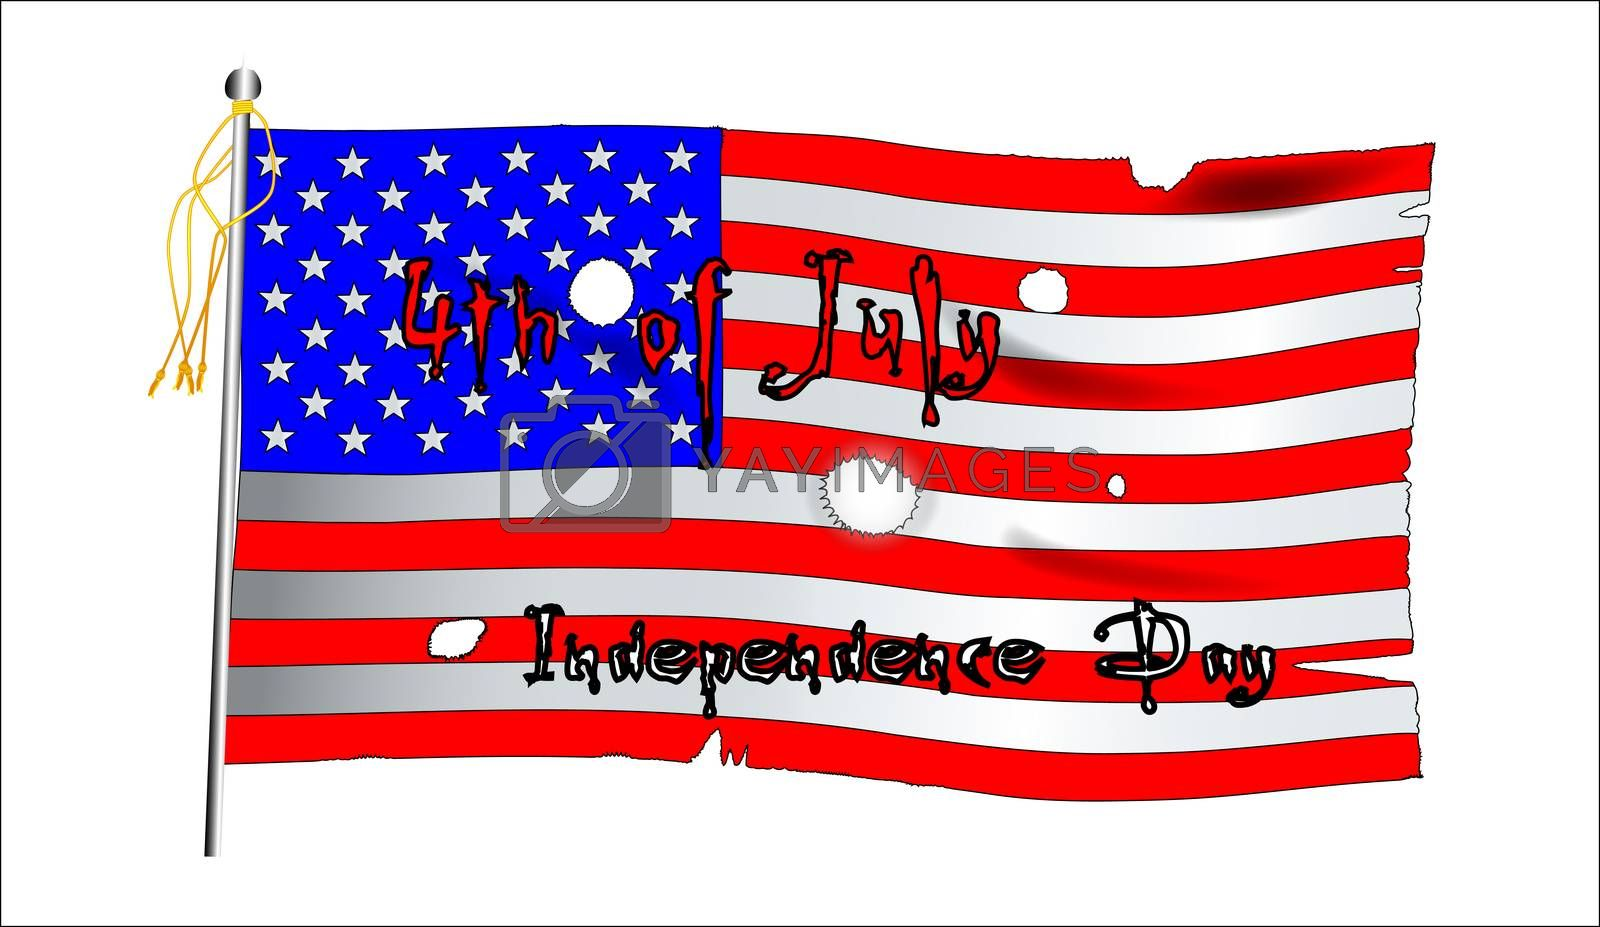 Fourth of July text infront of a Stars and Stripes flag.